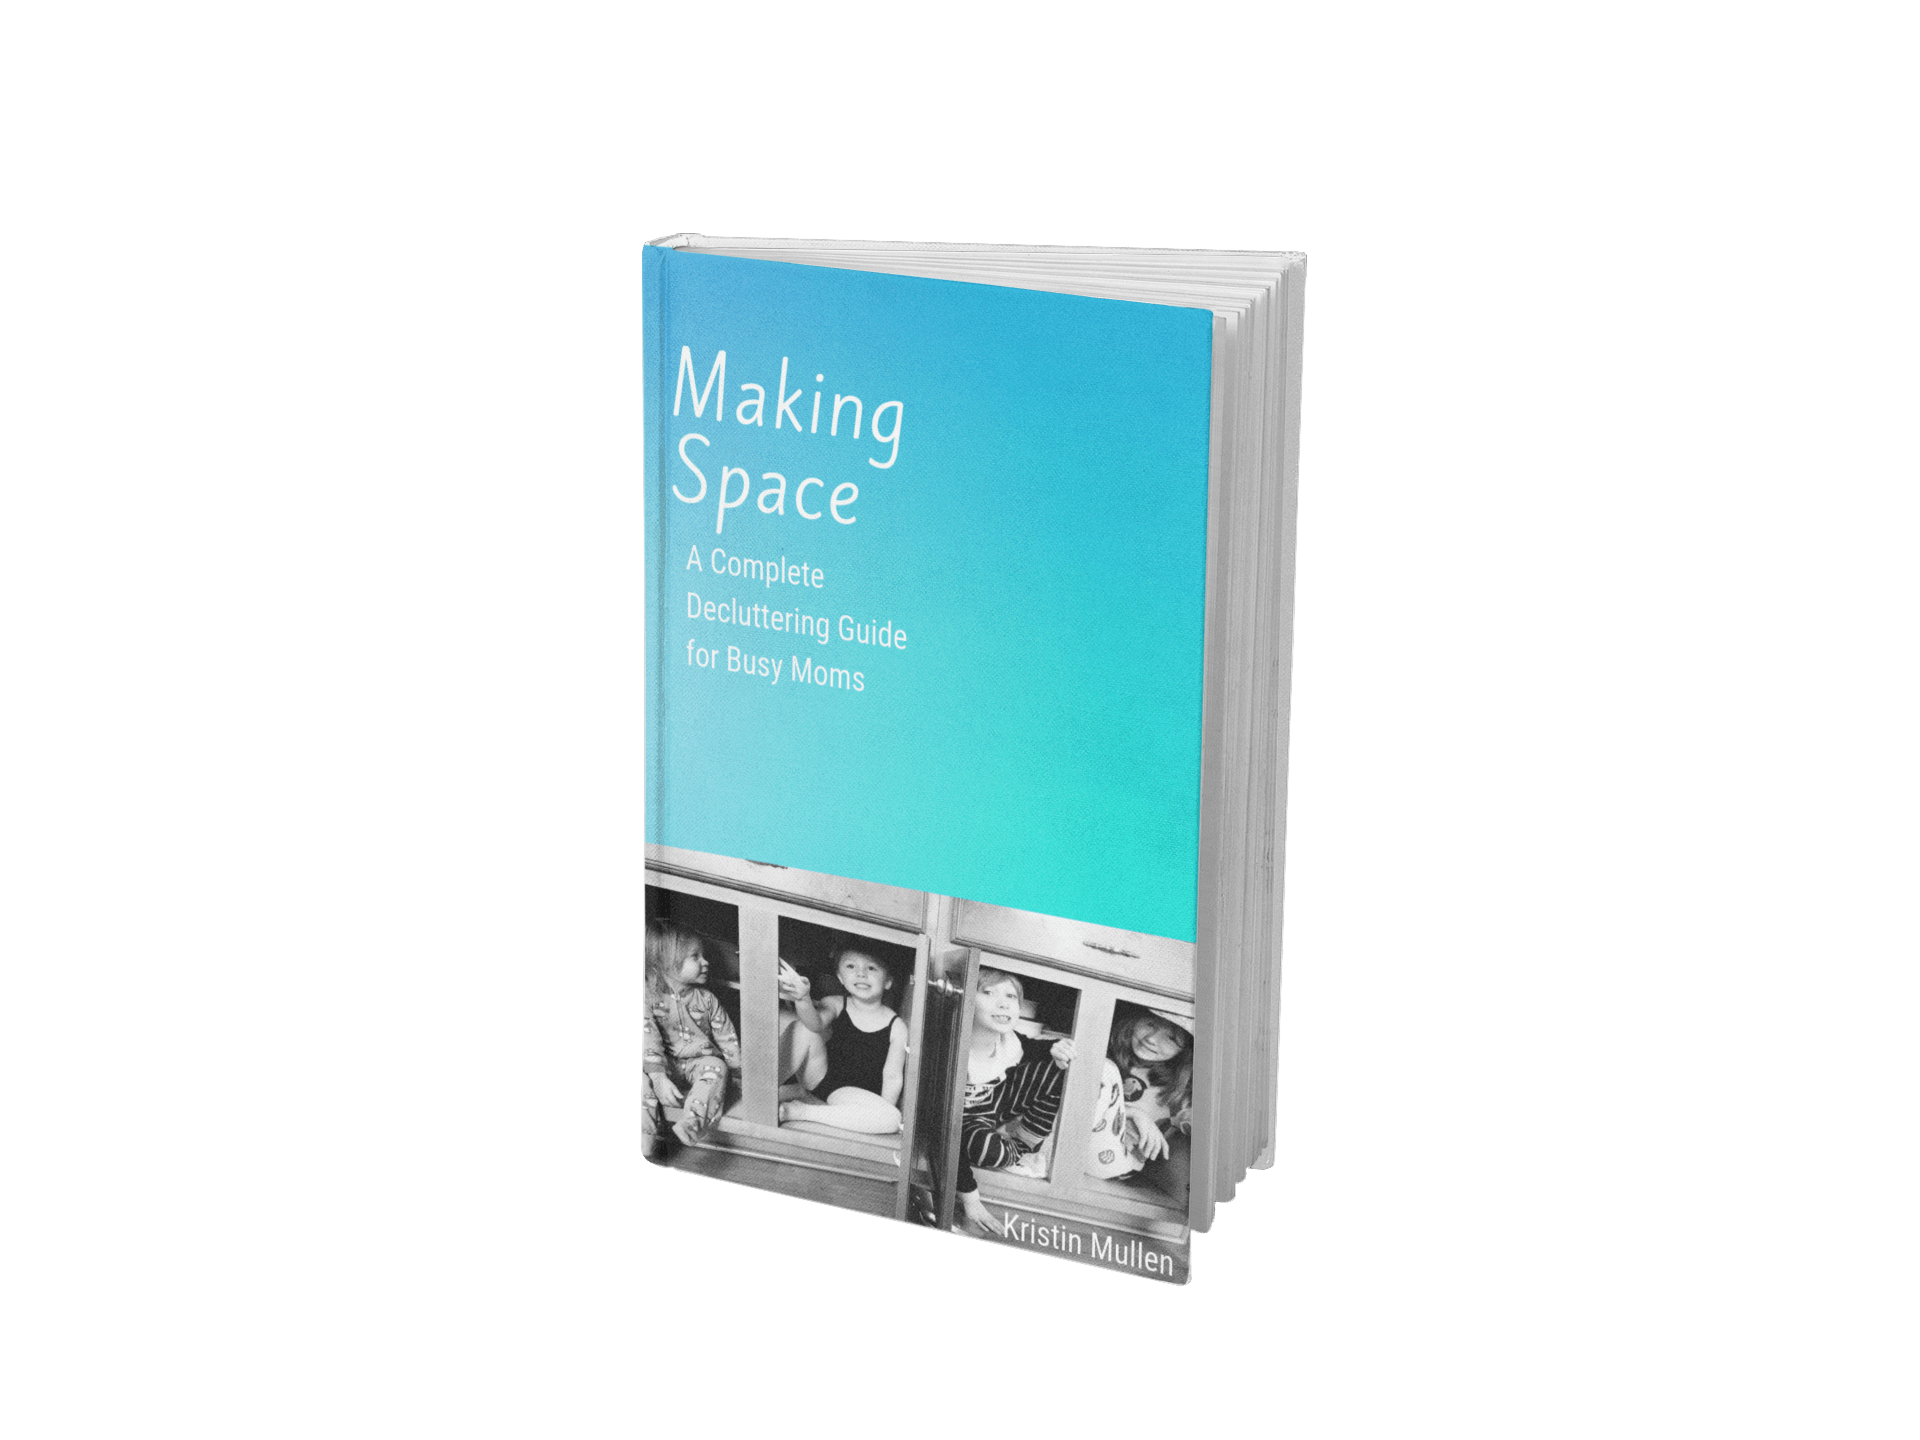 Making Space Ebook Mockup A9865 Totally The Mom